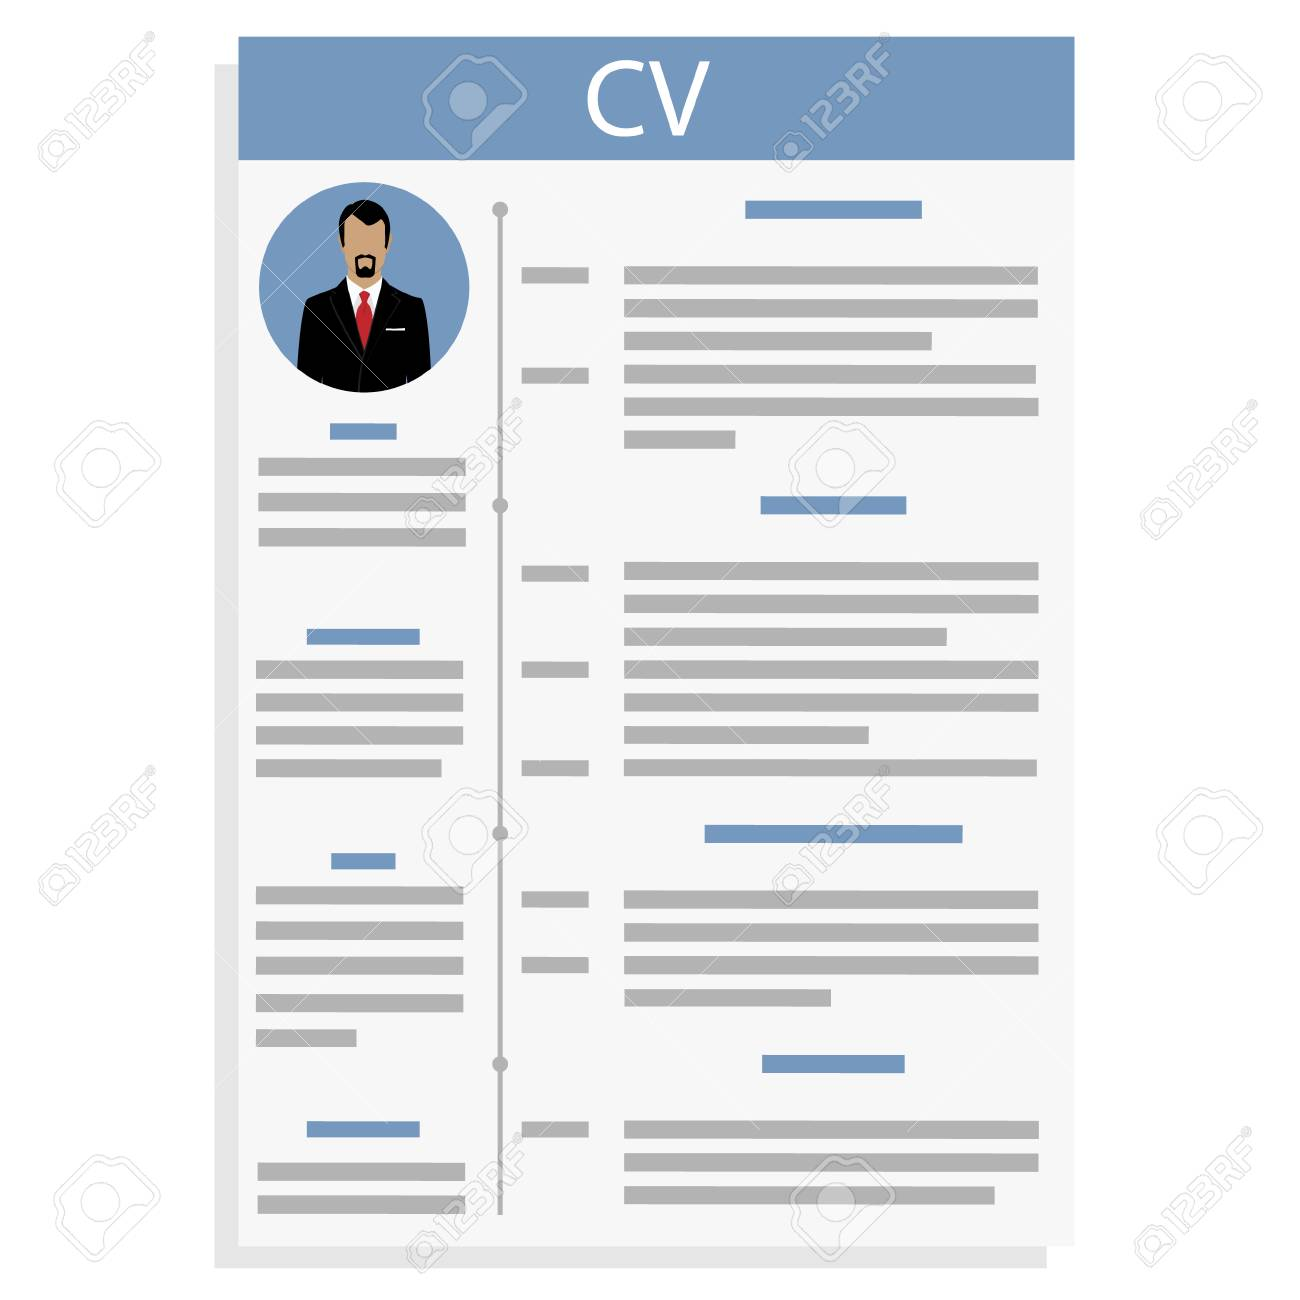 Vector Illustration Cv Or Resume Design Template With Man Photo